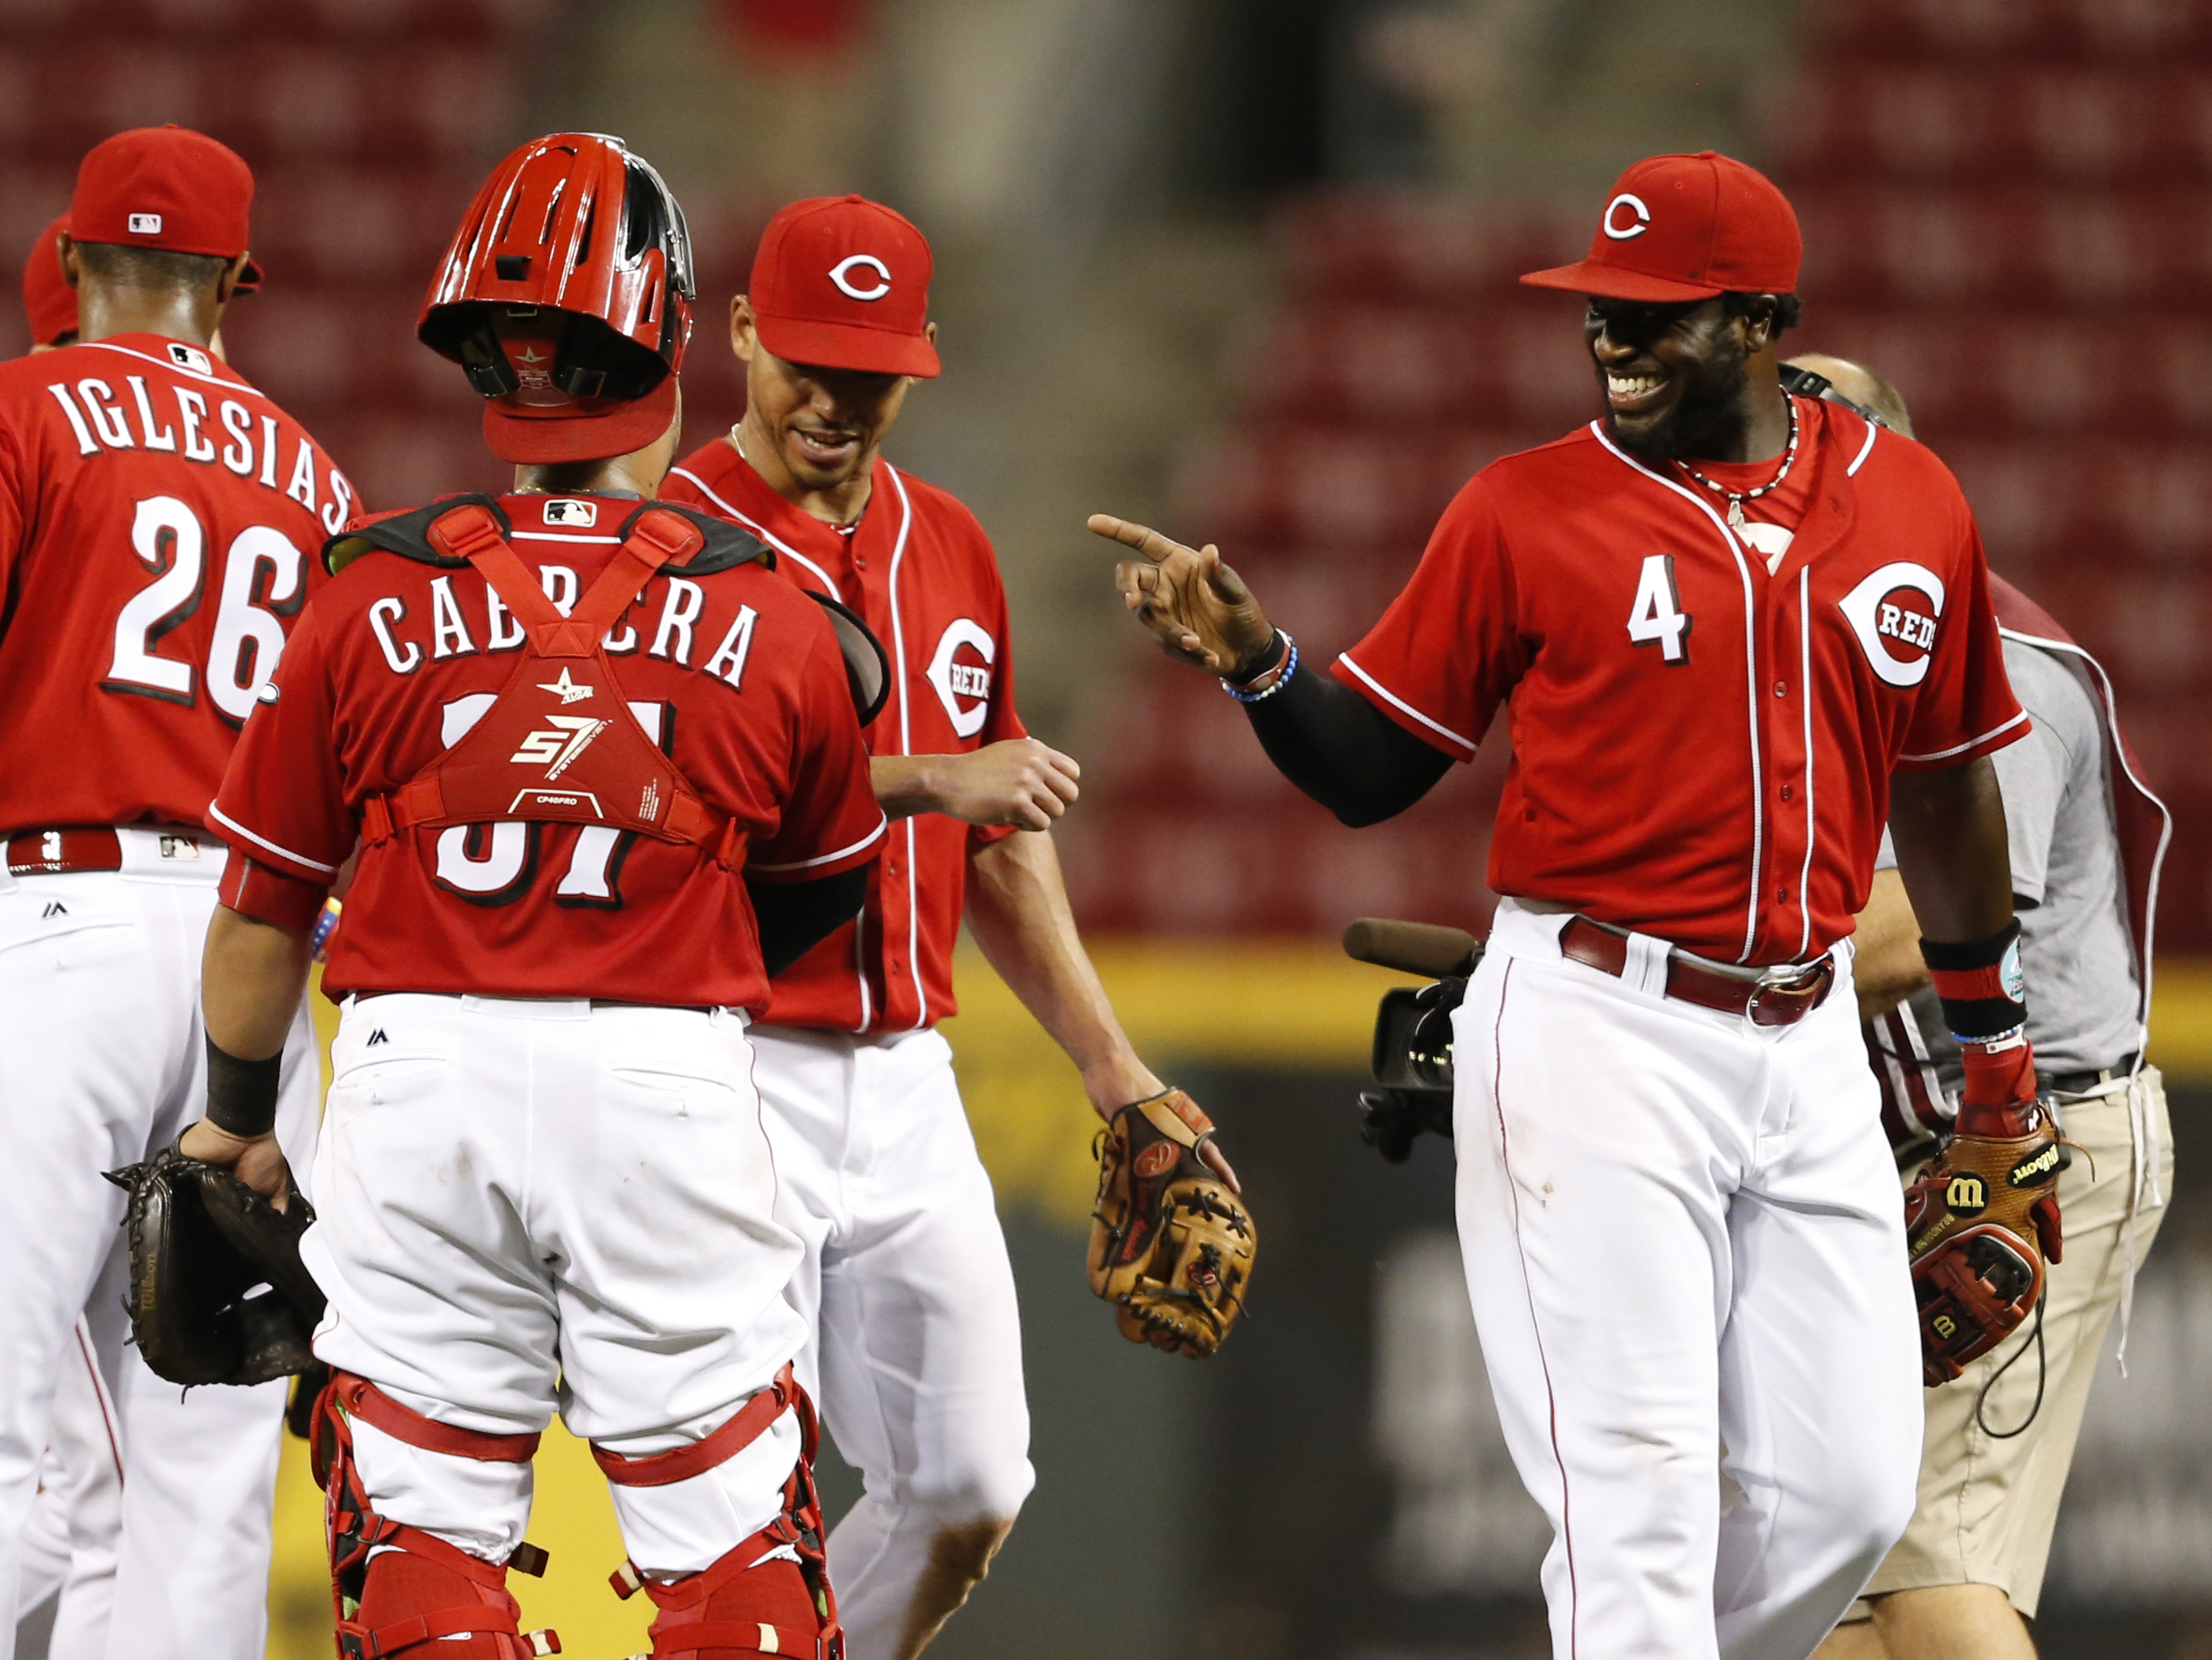 Cincinnati Reds' Brandon Phillips (4) points to catcher Ramon Cabrera, front left, as they celebrate the team's 5-4 win over the Miami Marlins a baseball game, Thursday, Aug. 18, 2016, in Cincinnati. Cabrera hit a three-run home run in the game. (AP Photo